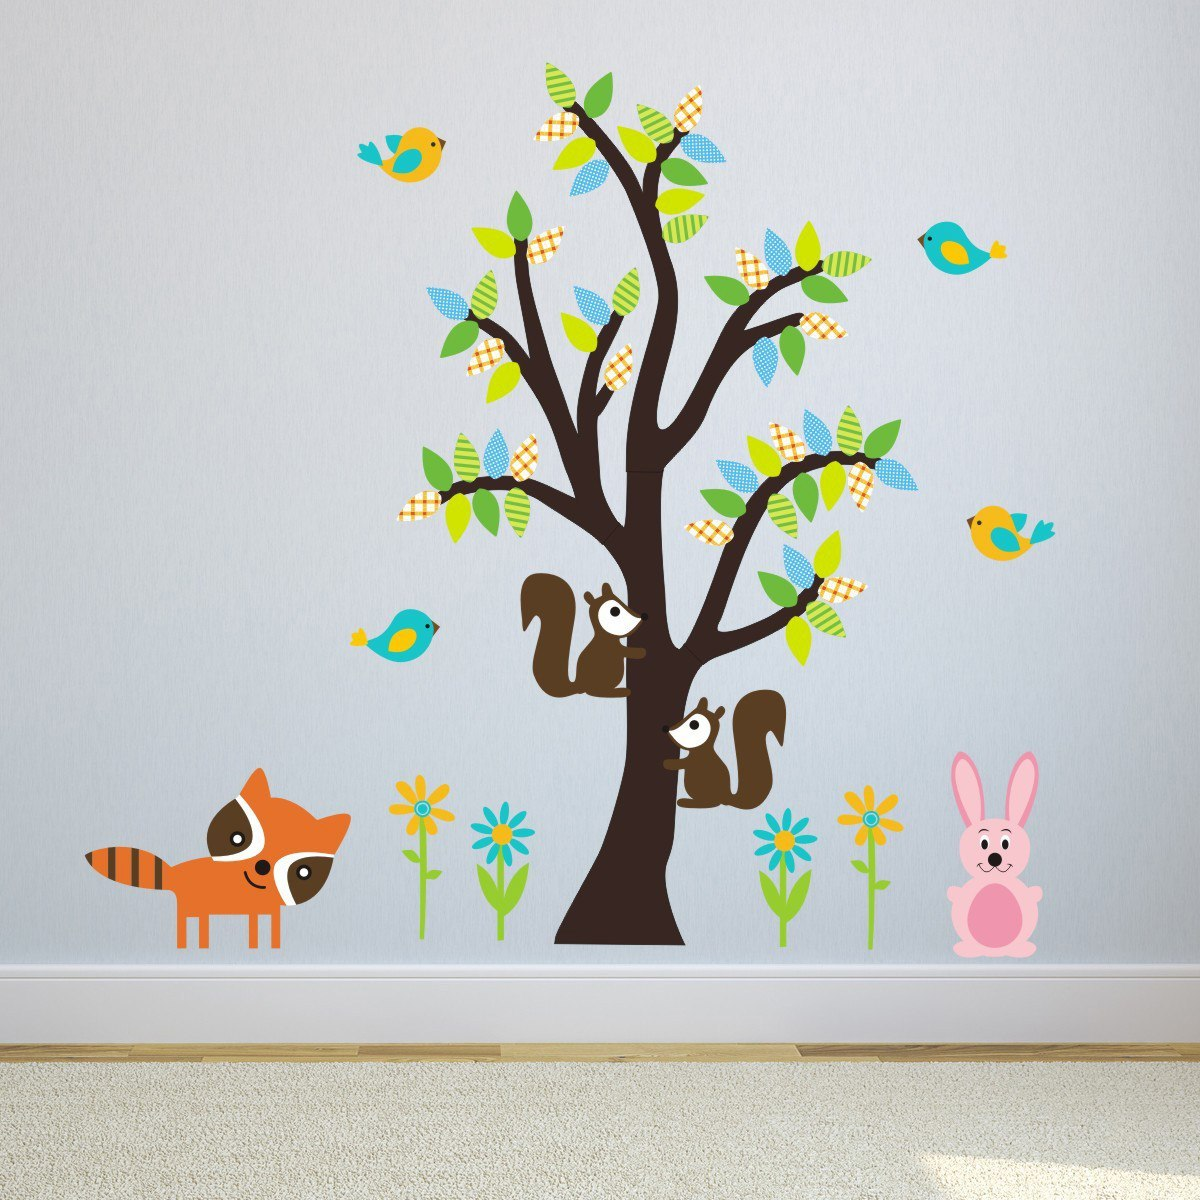 Patterned Forest Tree With Animals Wall Sticker